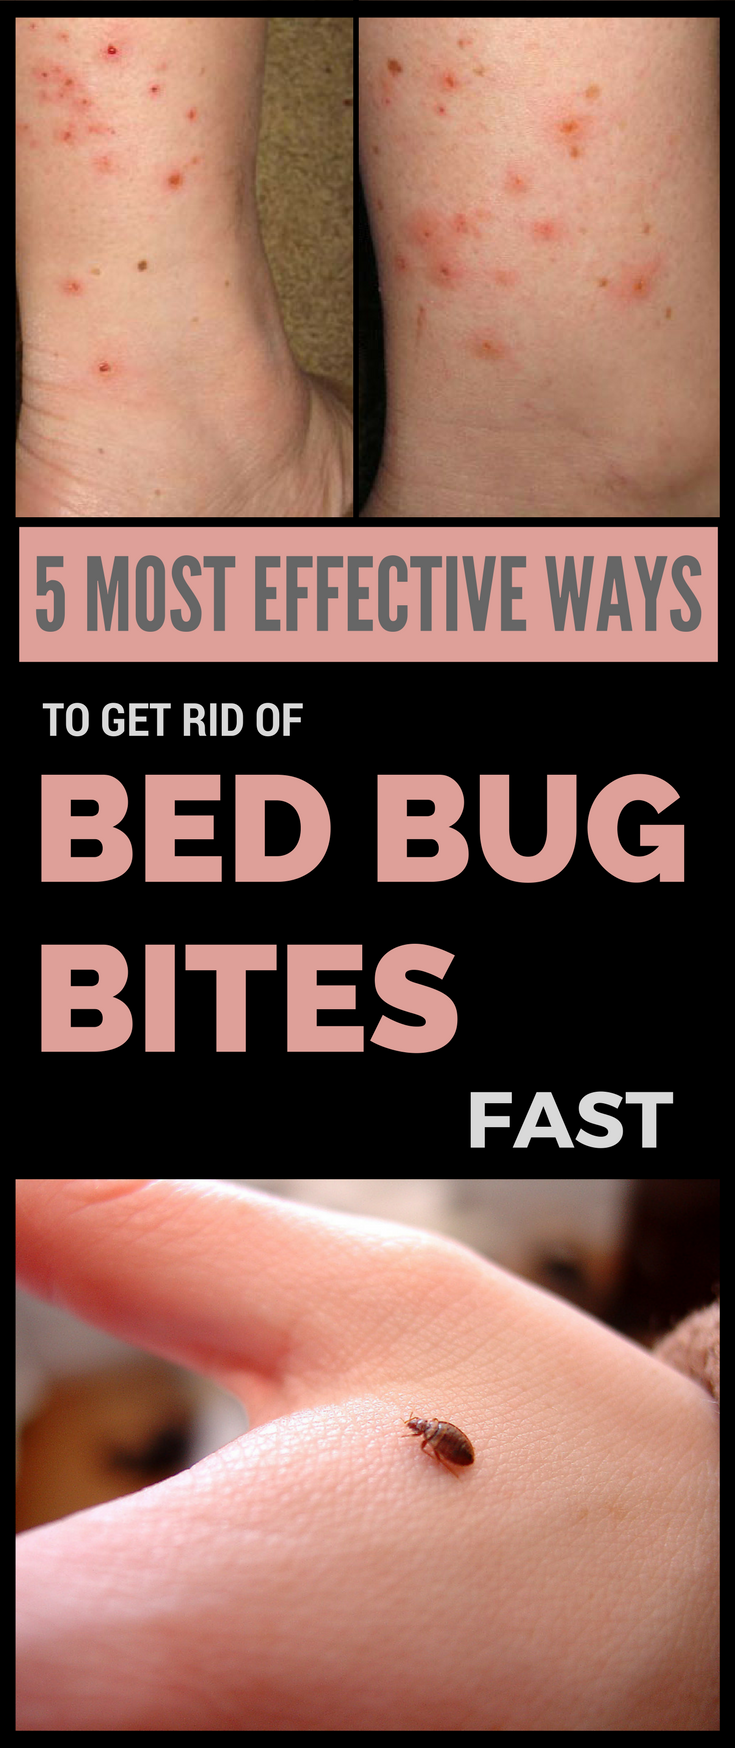 5 Most Effective Ways to Get Rid of Bed Bug Bites Fast